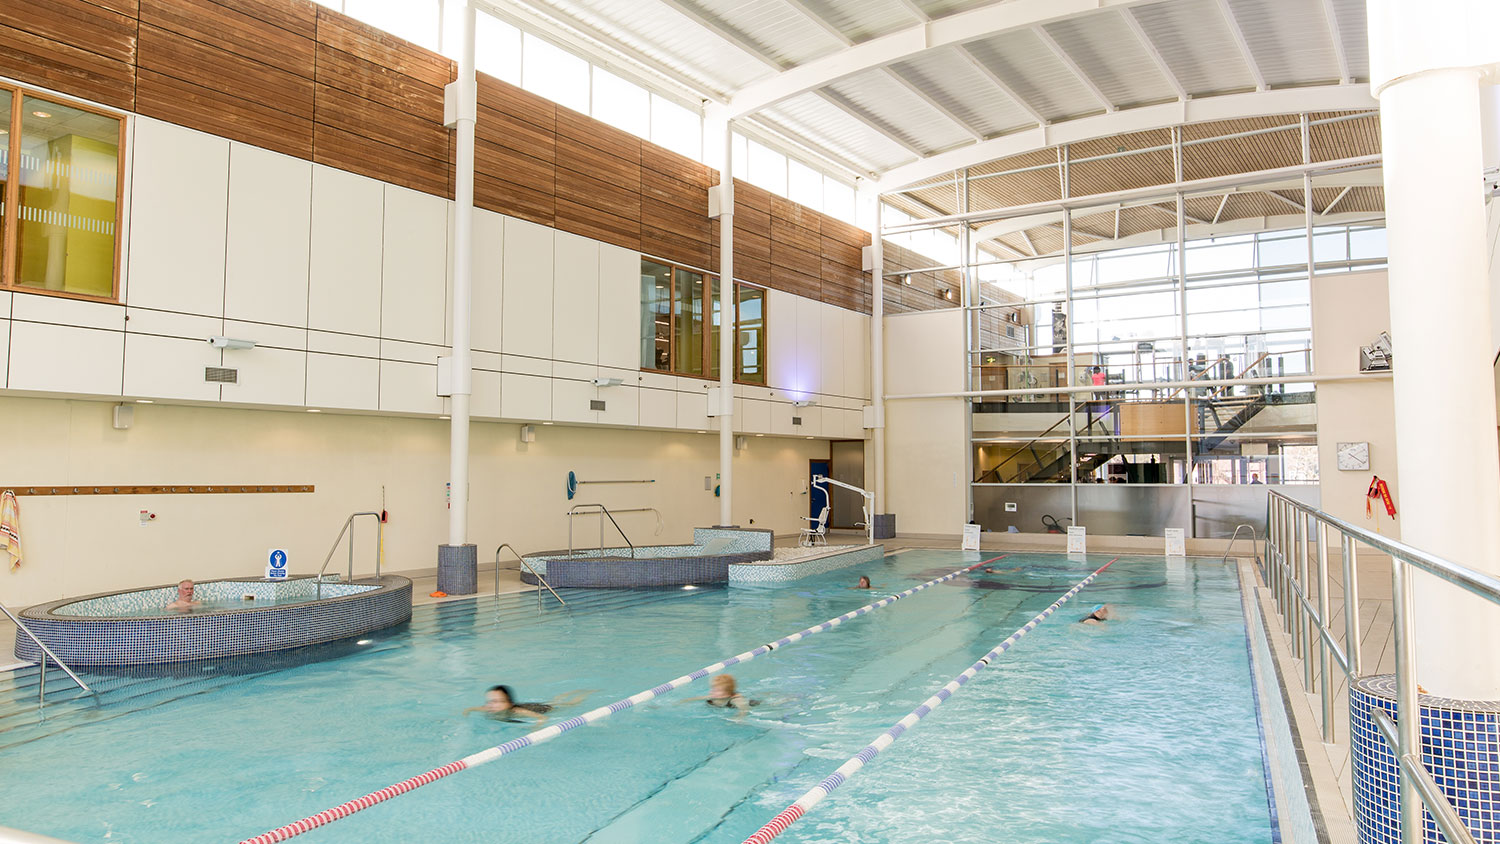 Chingford gym swimming pool